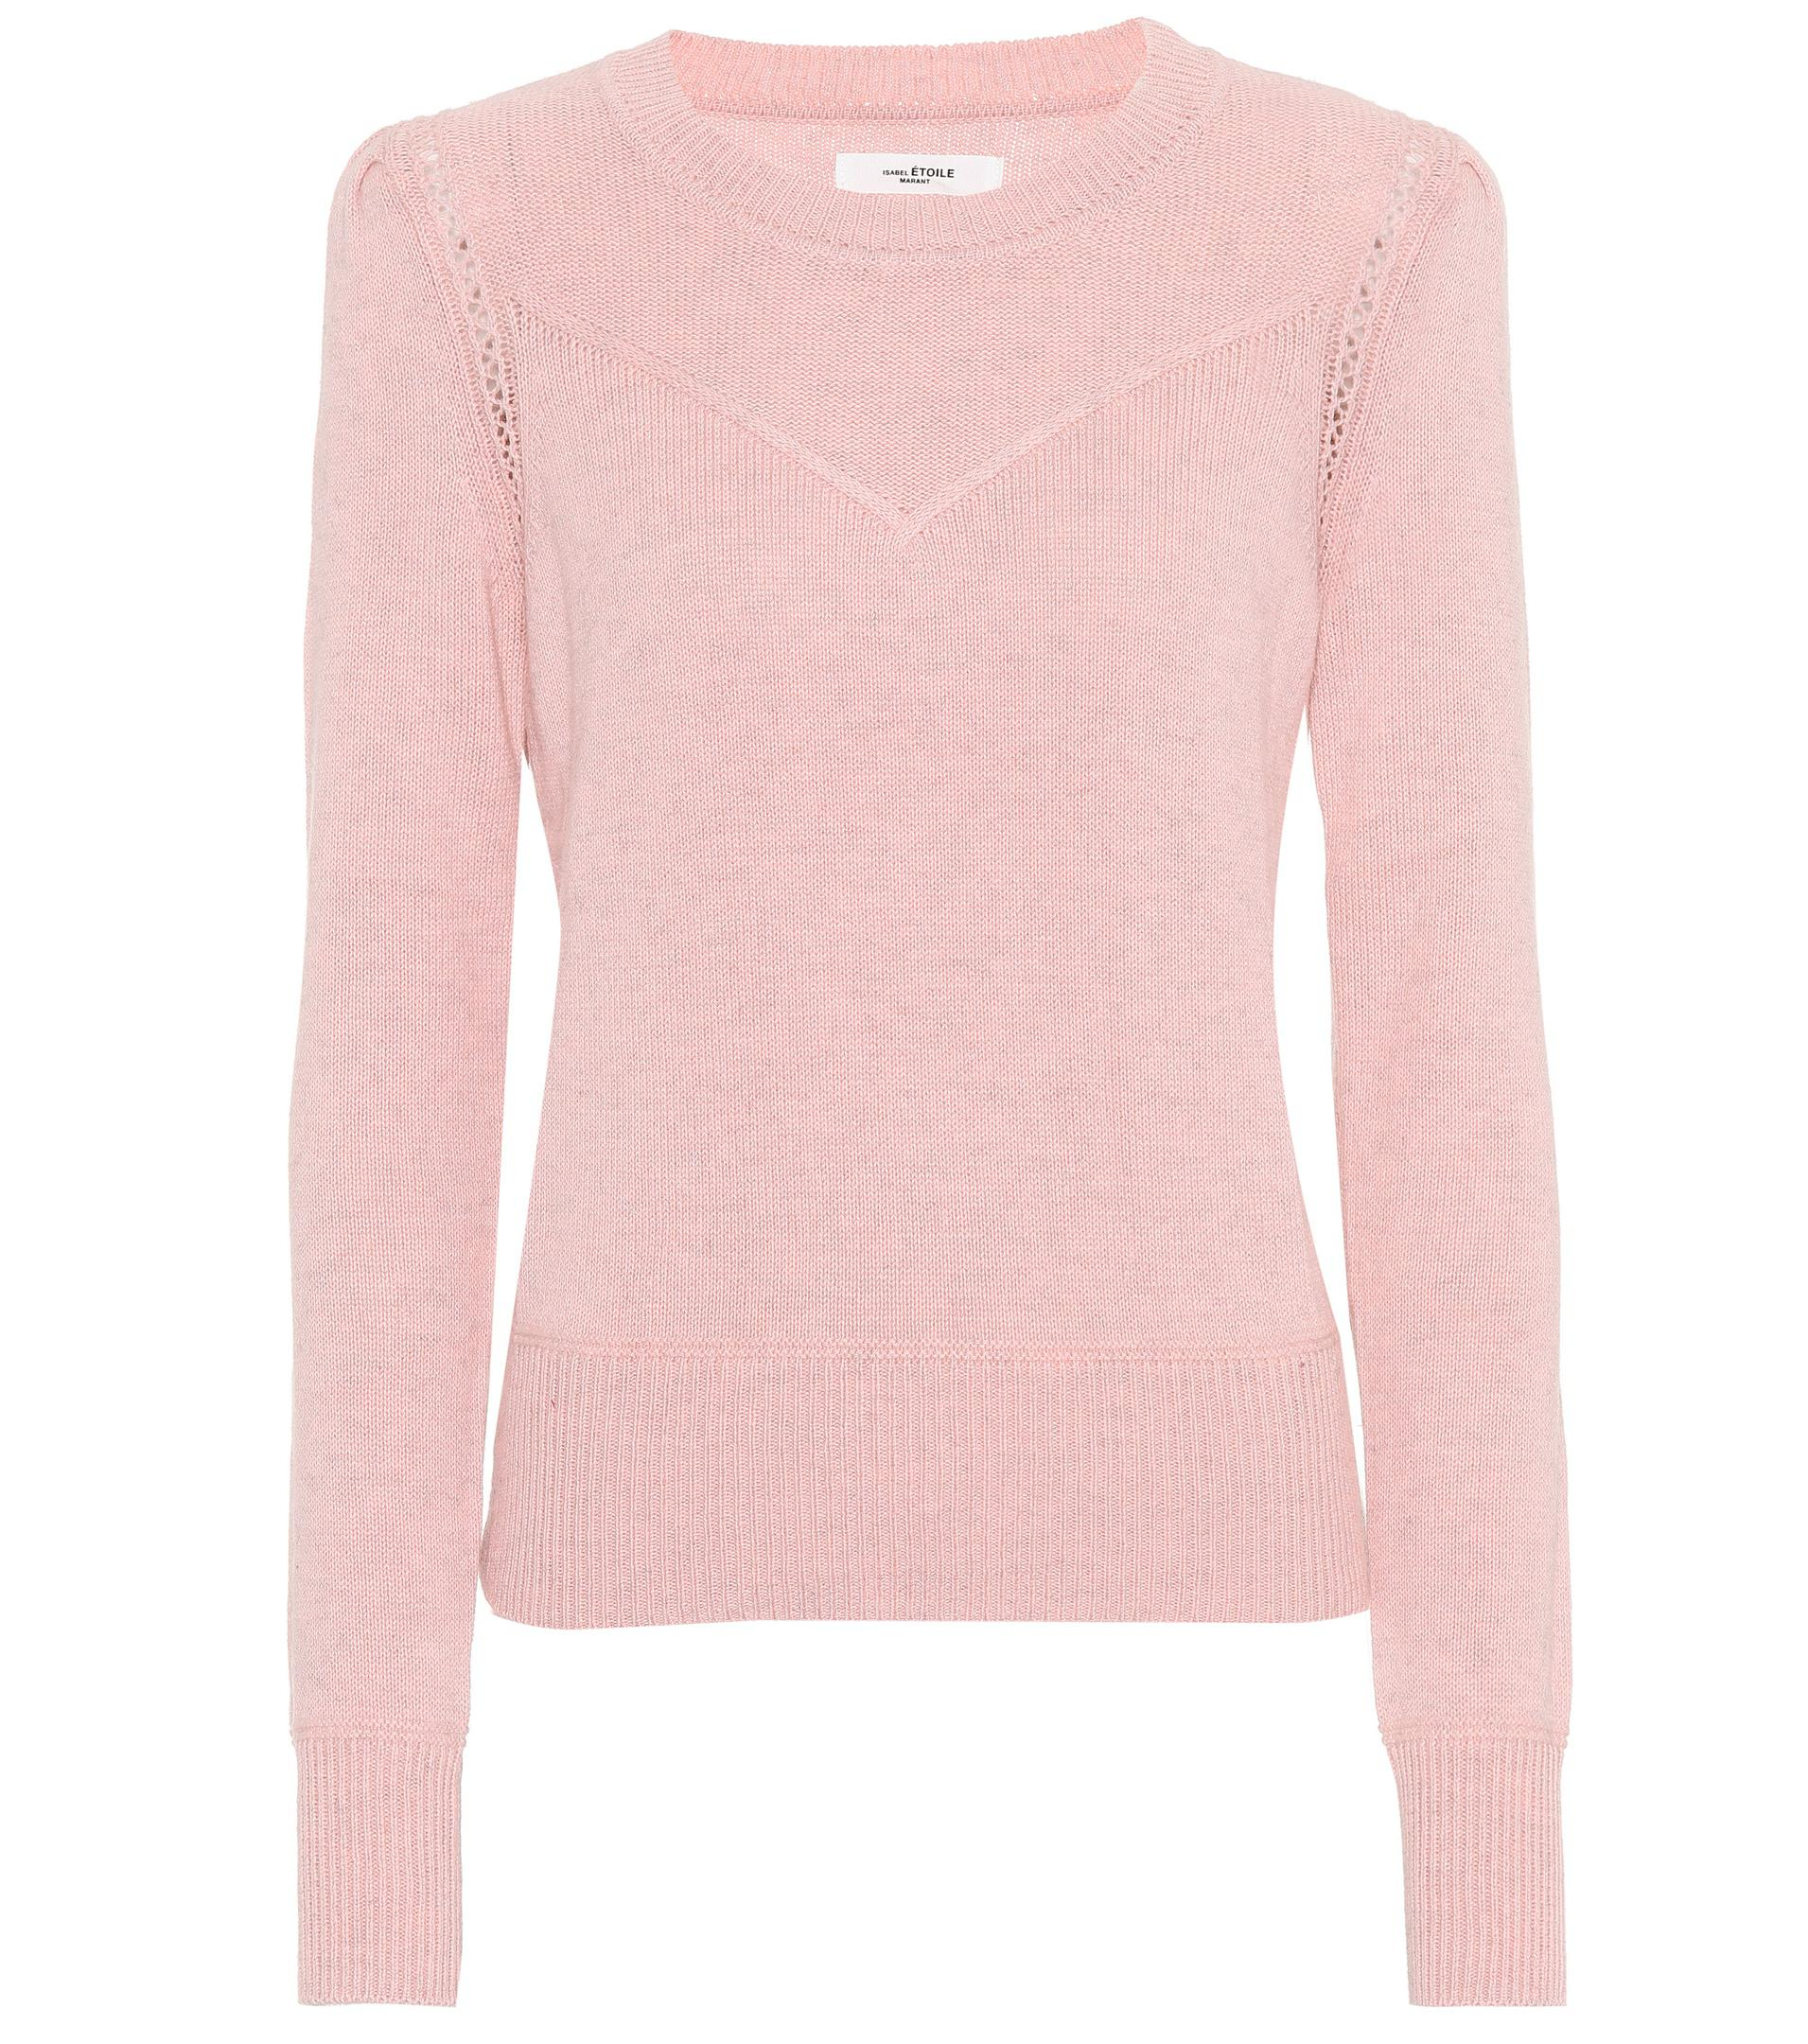 Étoile isabel marant Kios Cotton And Wool Sweater in Pink | Lyst